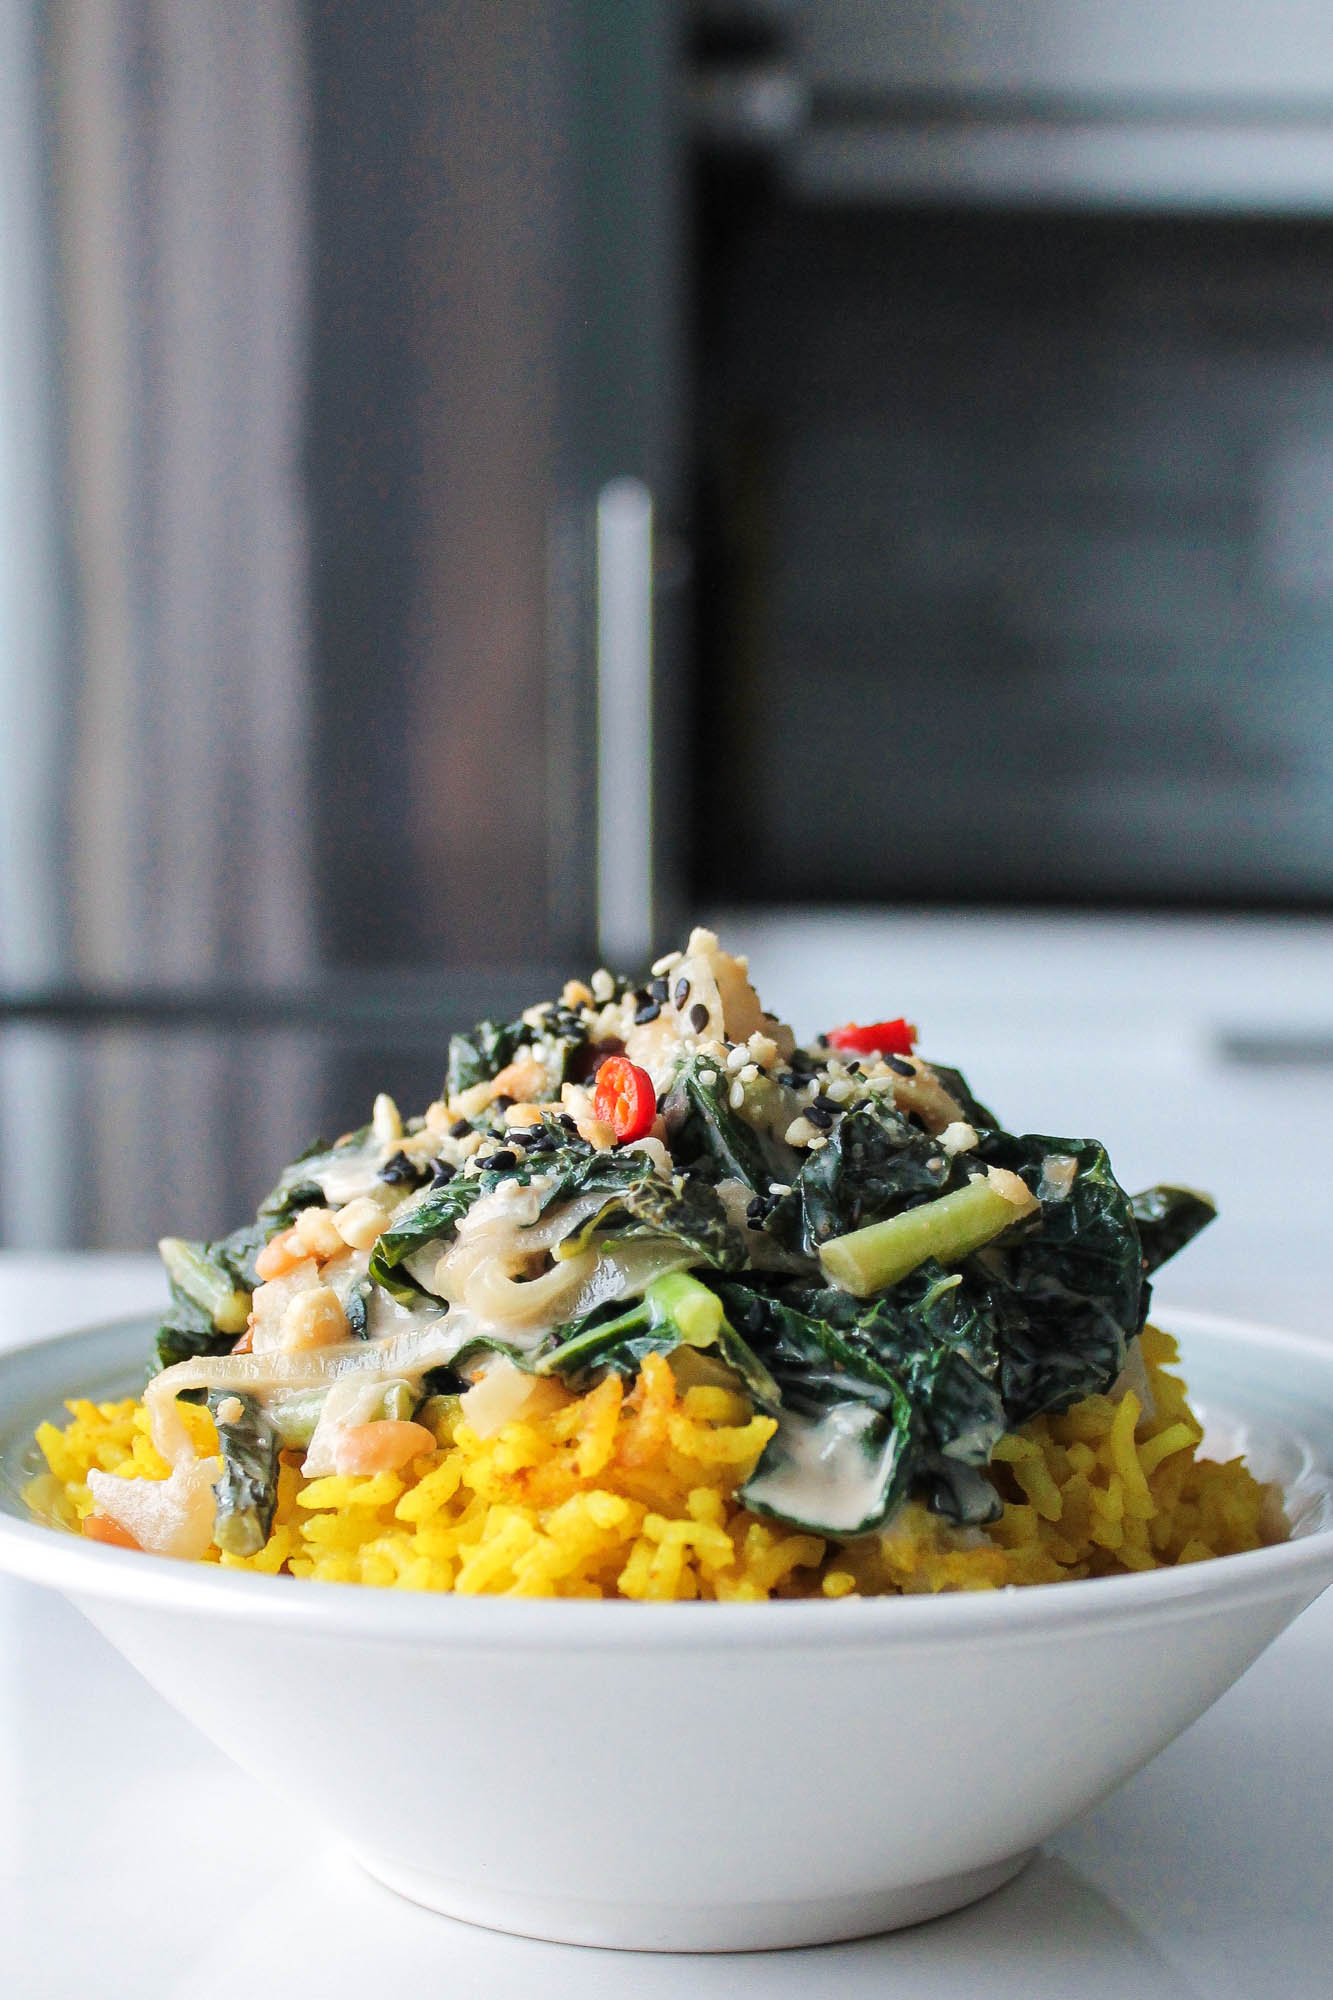 Braised Coconut Milk + Peanut Greens with Ginger Turmeric Rice || This simple recipe for coconut curried kale over turmeric rice is healthy, vegan and a 30 minute meal! Dairy free, gluten free, + plant based. || creamandhoney.ca